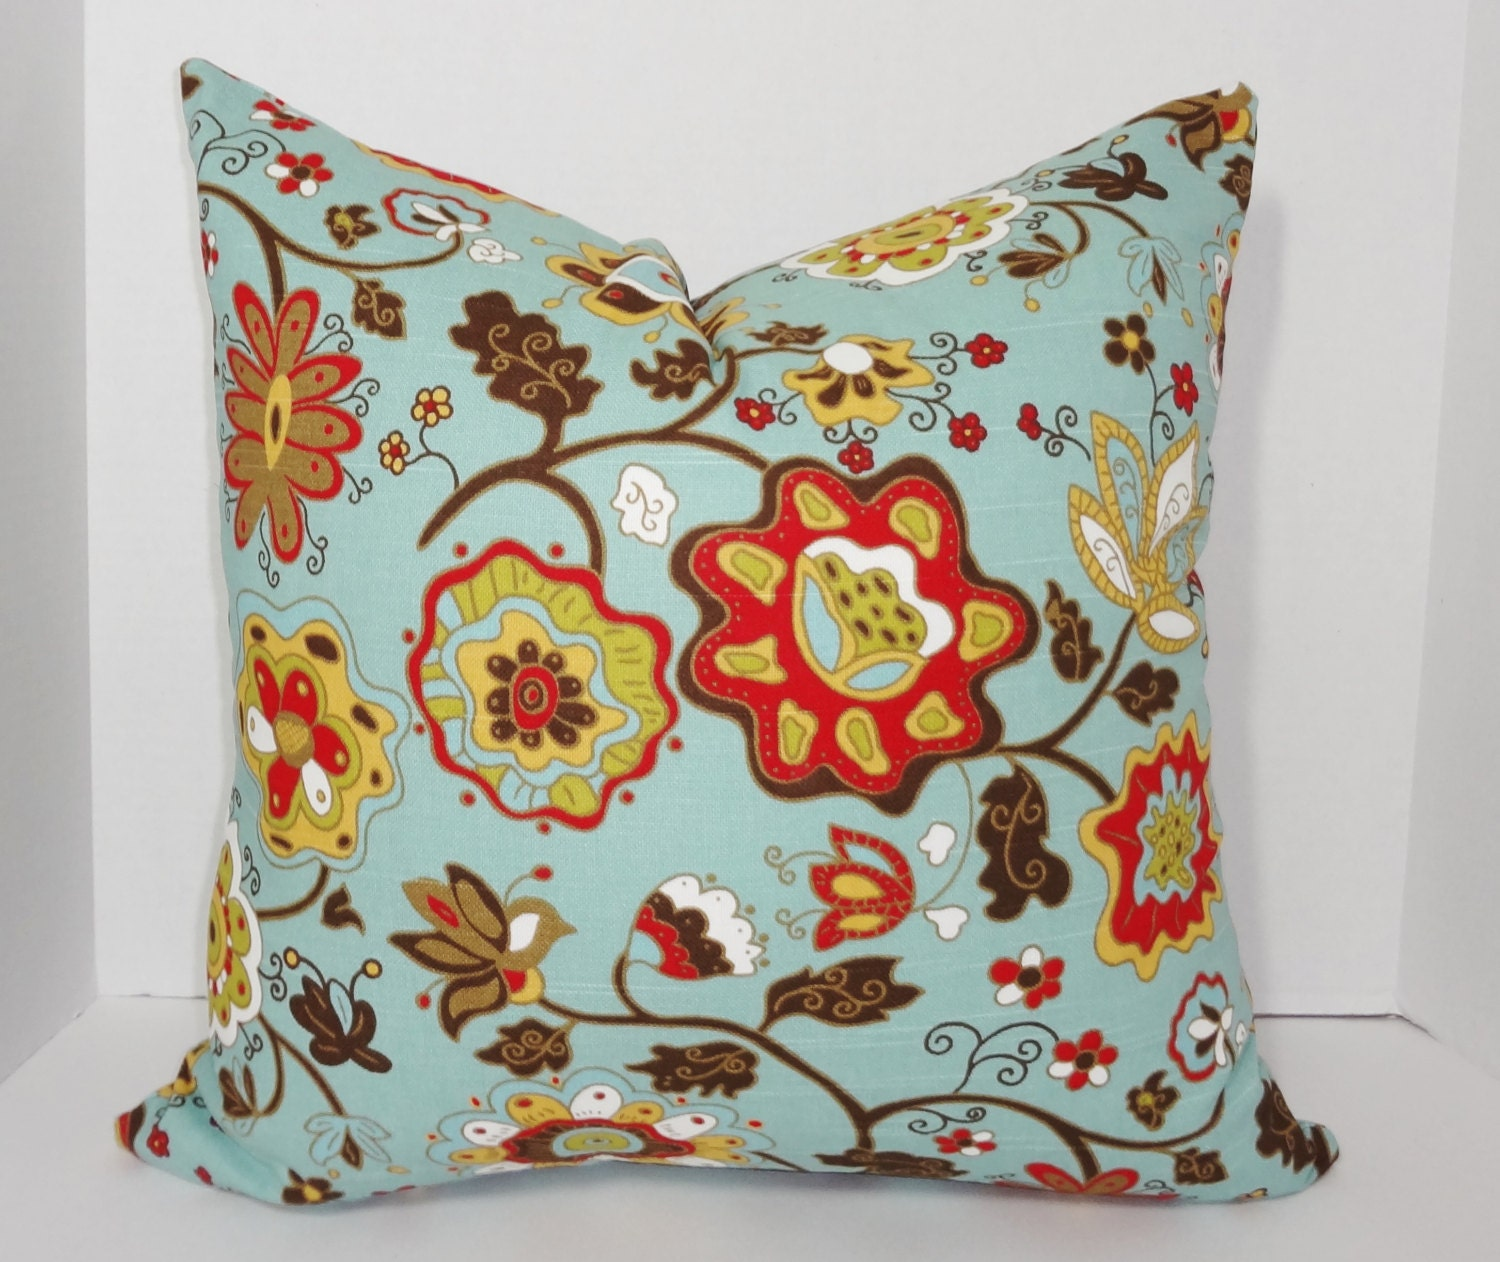 Brown Floral Throw Pillow : Decorative Blue Red Brown Floral Pillow Cover Decorative